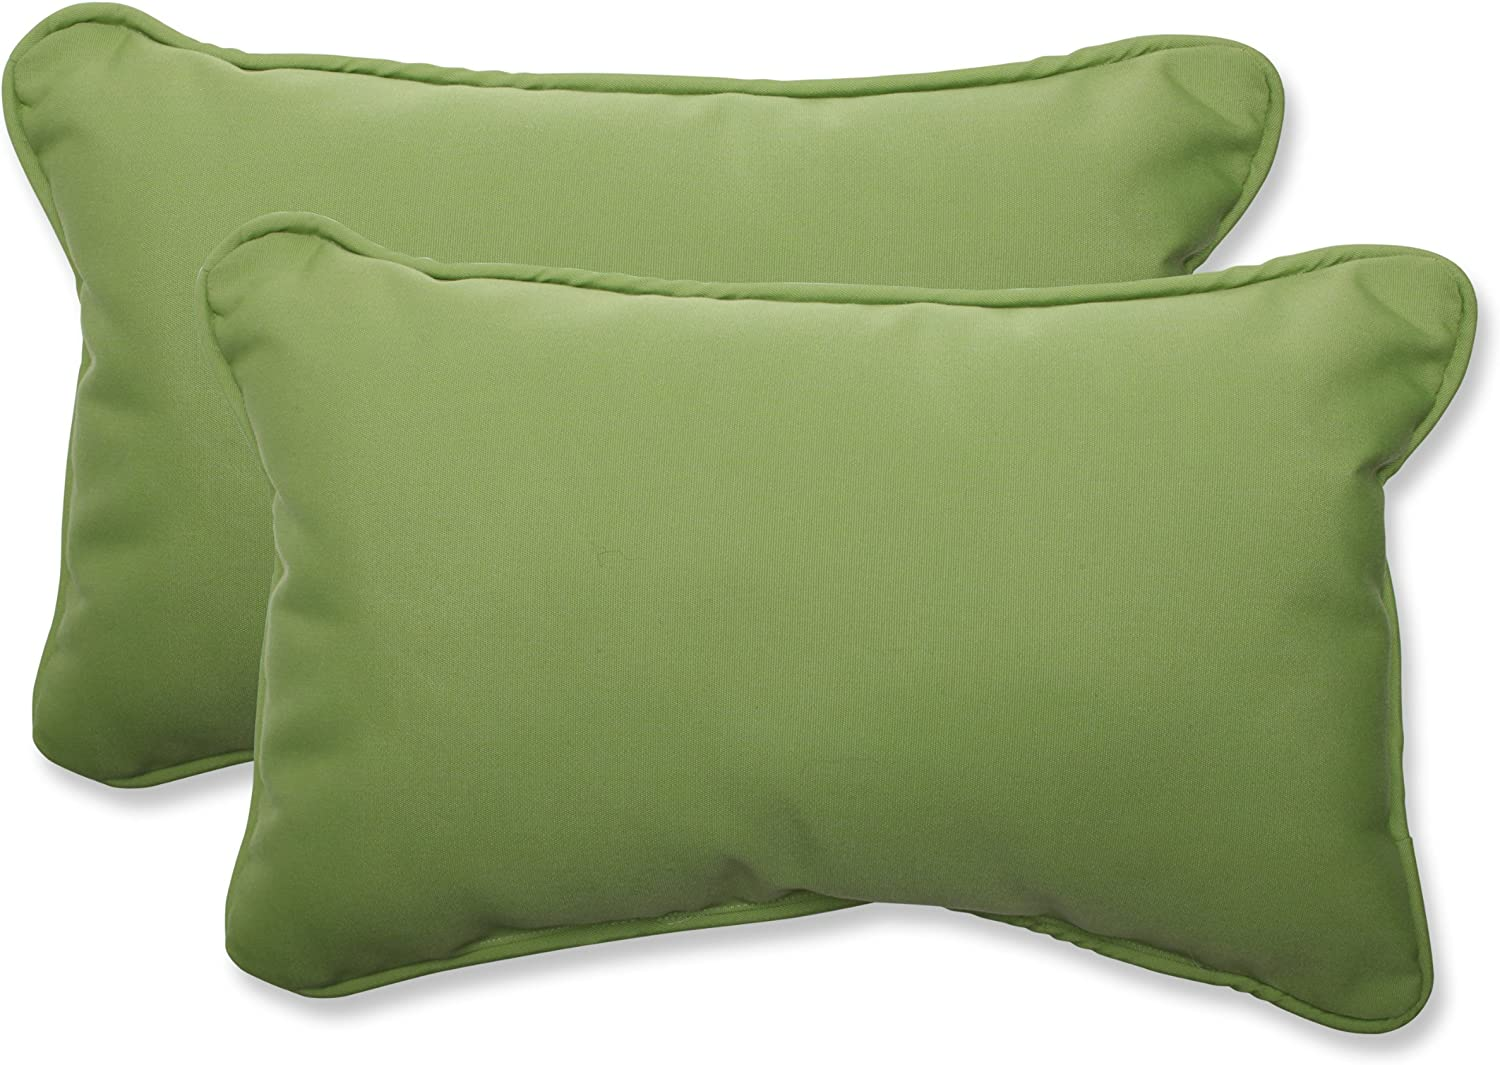 Pillow Perfect Indoor Outdoor Rectangular Throw Pillow (Set of 2) with Sunbrella Canvas Ginkgo Fabric, 18.5 in. L X 11.5 in. W X 5 in. D